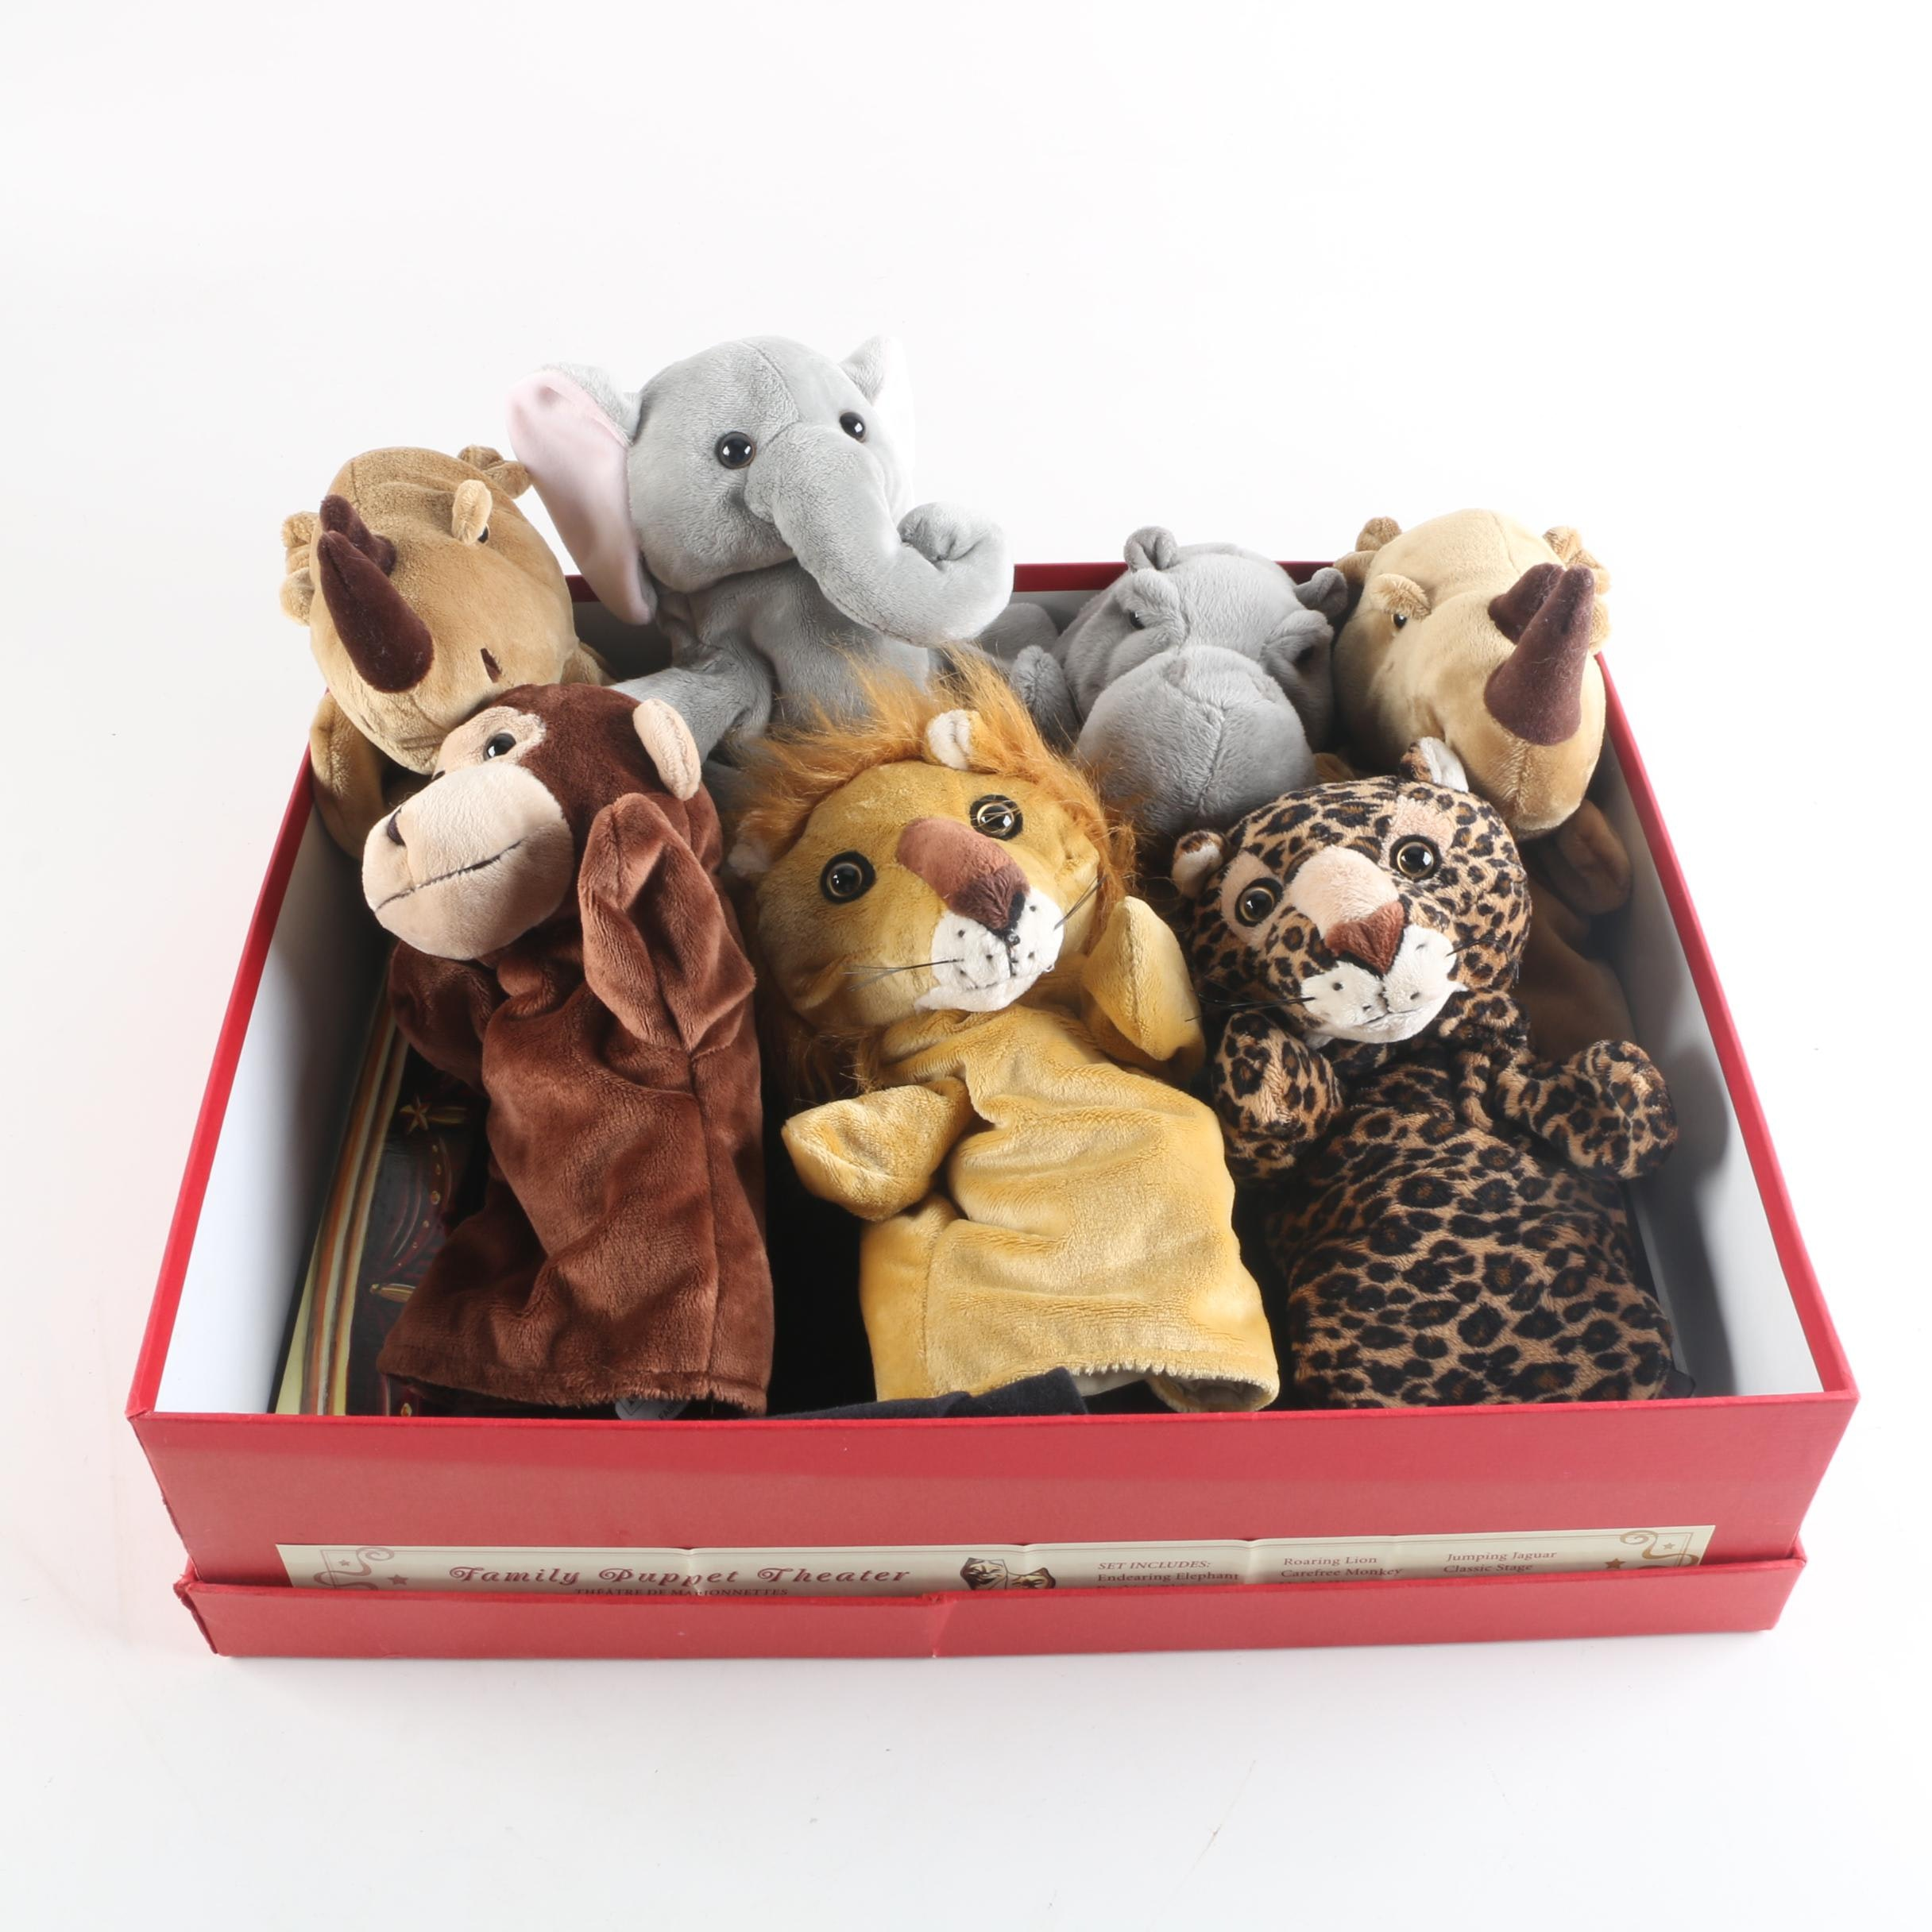 """Restoration Hardware """"Family Puppet Theater"""" with Hand Puppets"""